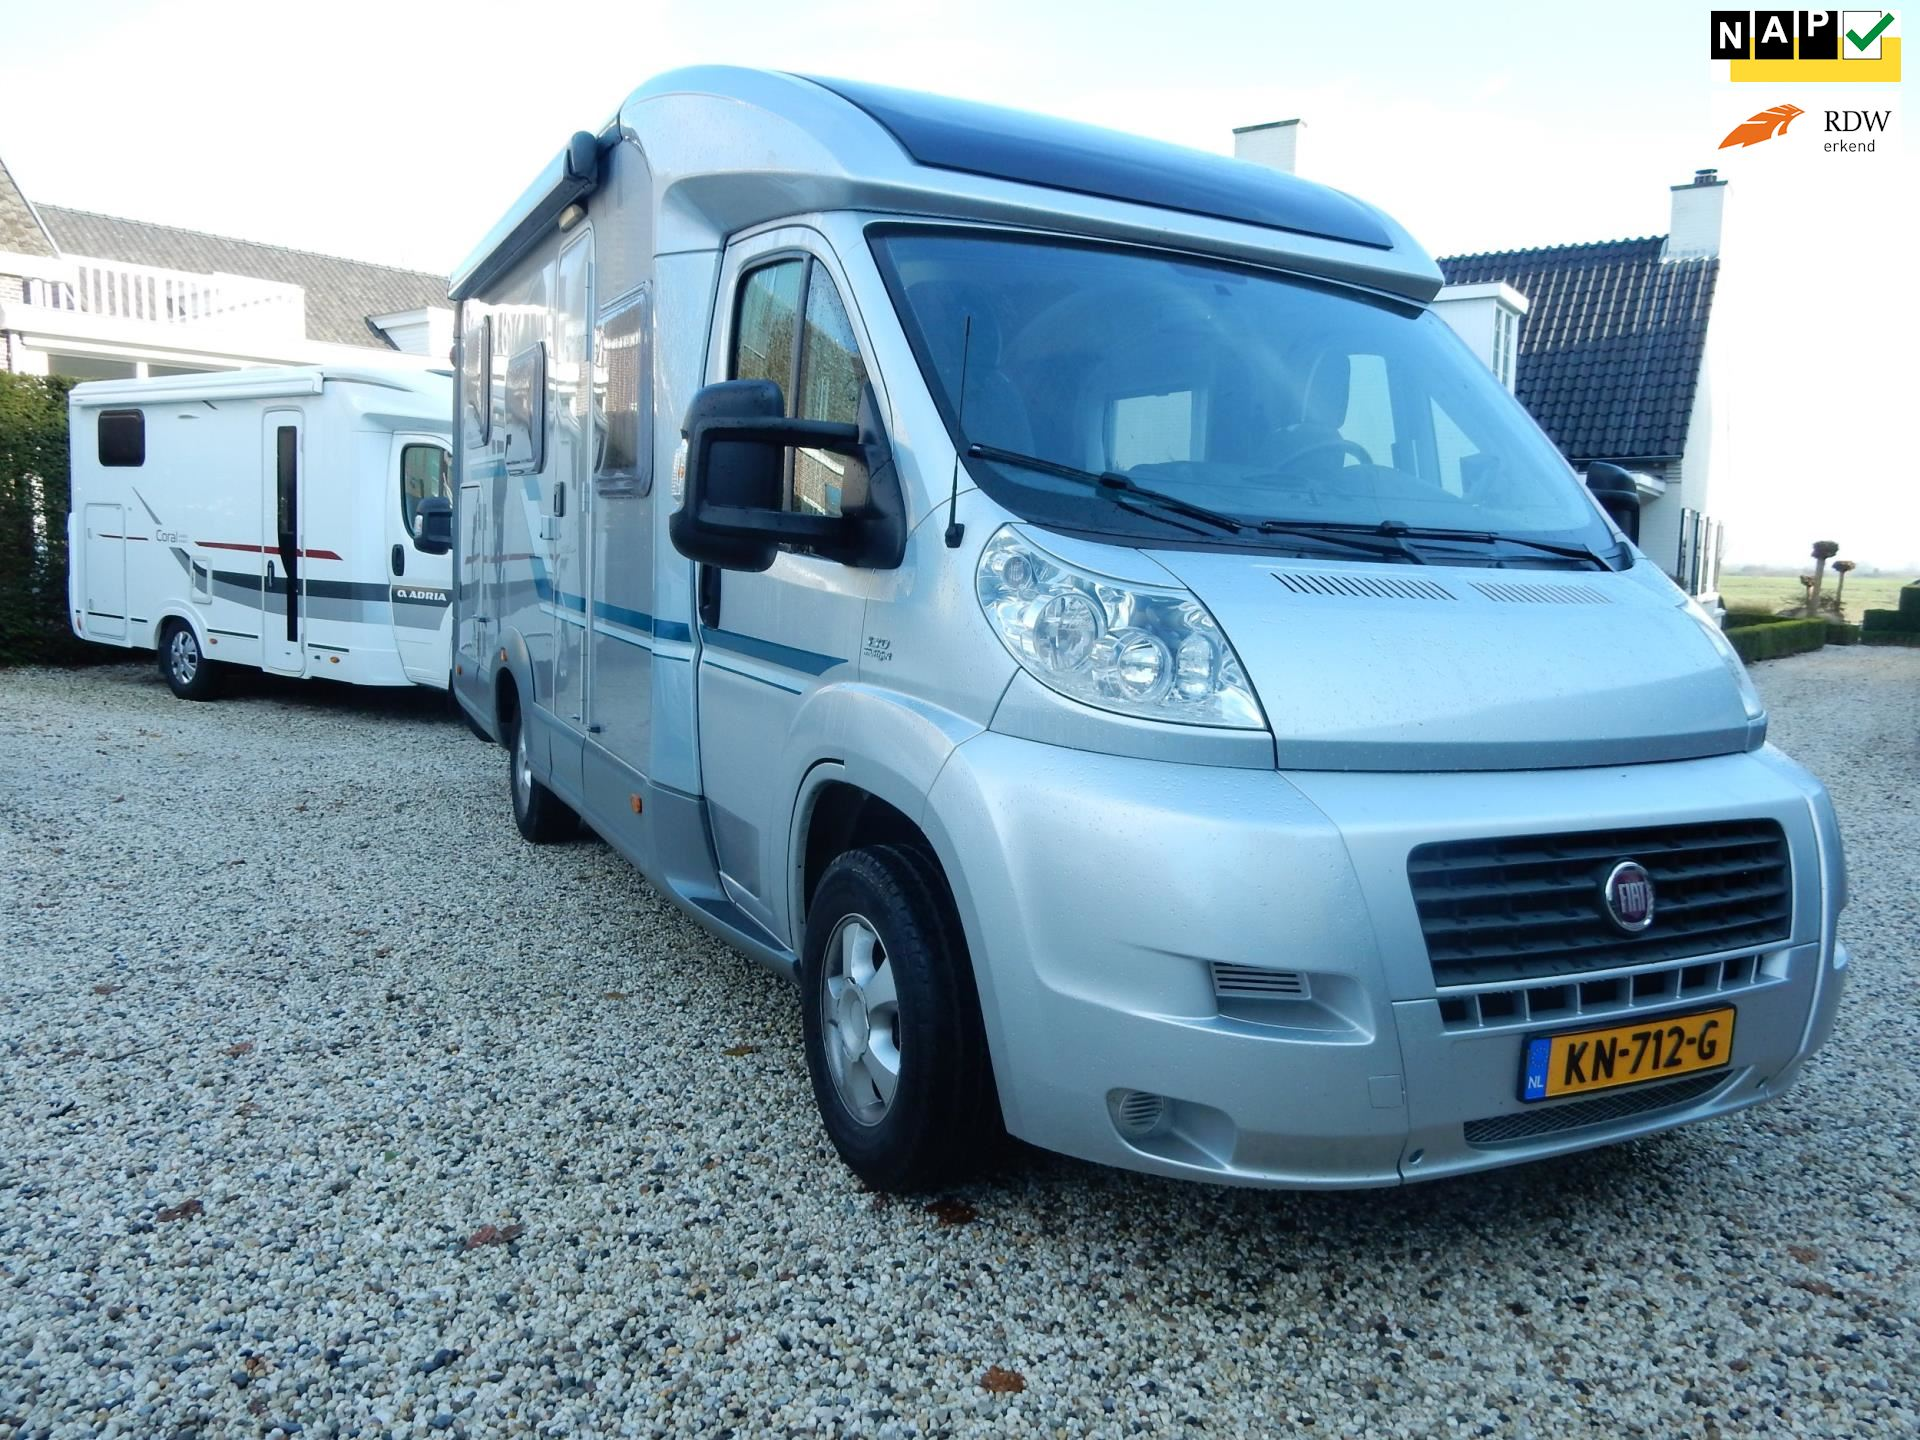 WEINSBERG KNAUS IMPERIALE occasion - Campers Kerkdriel